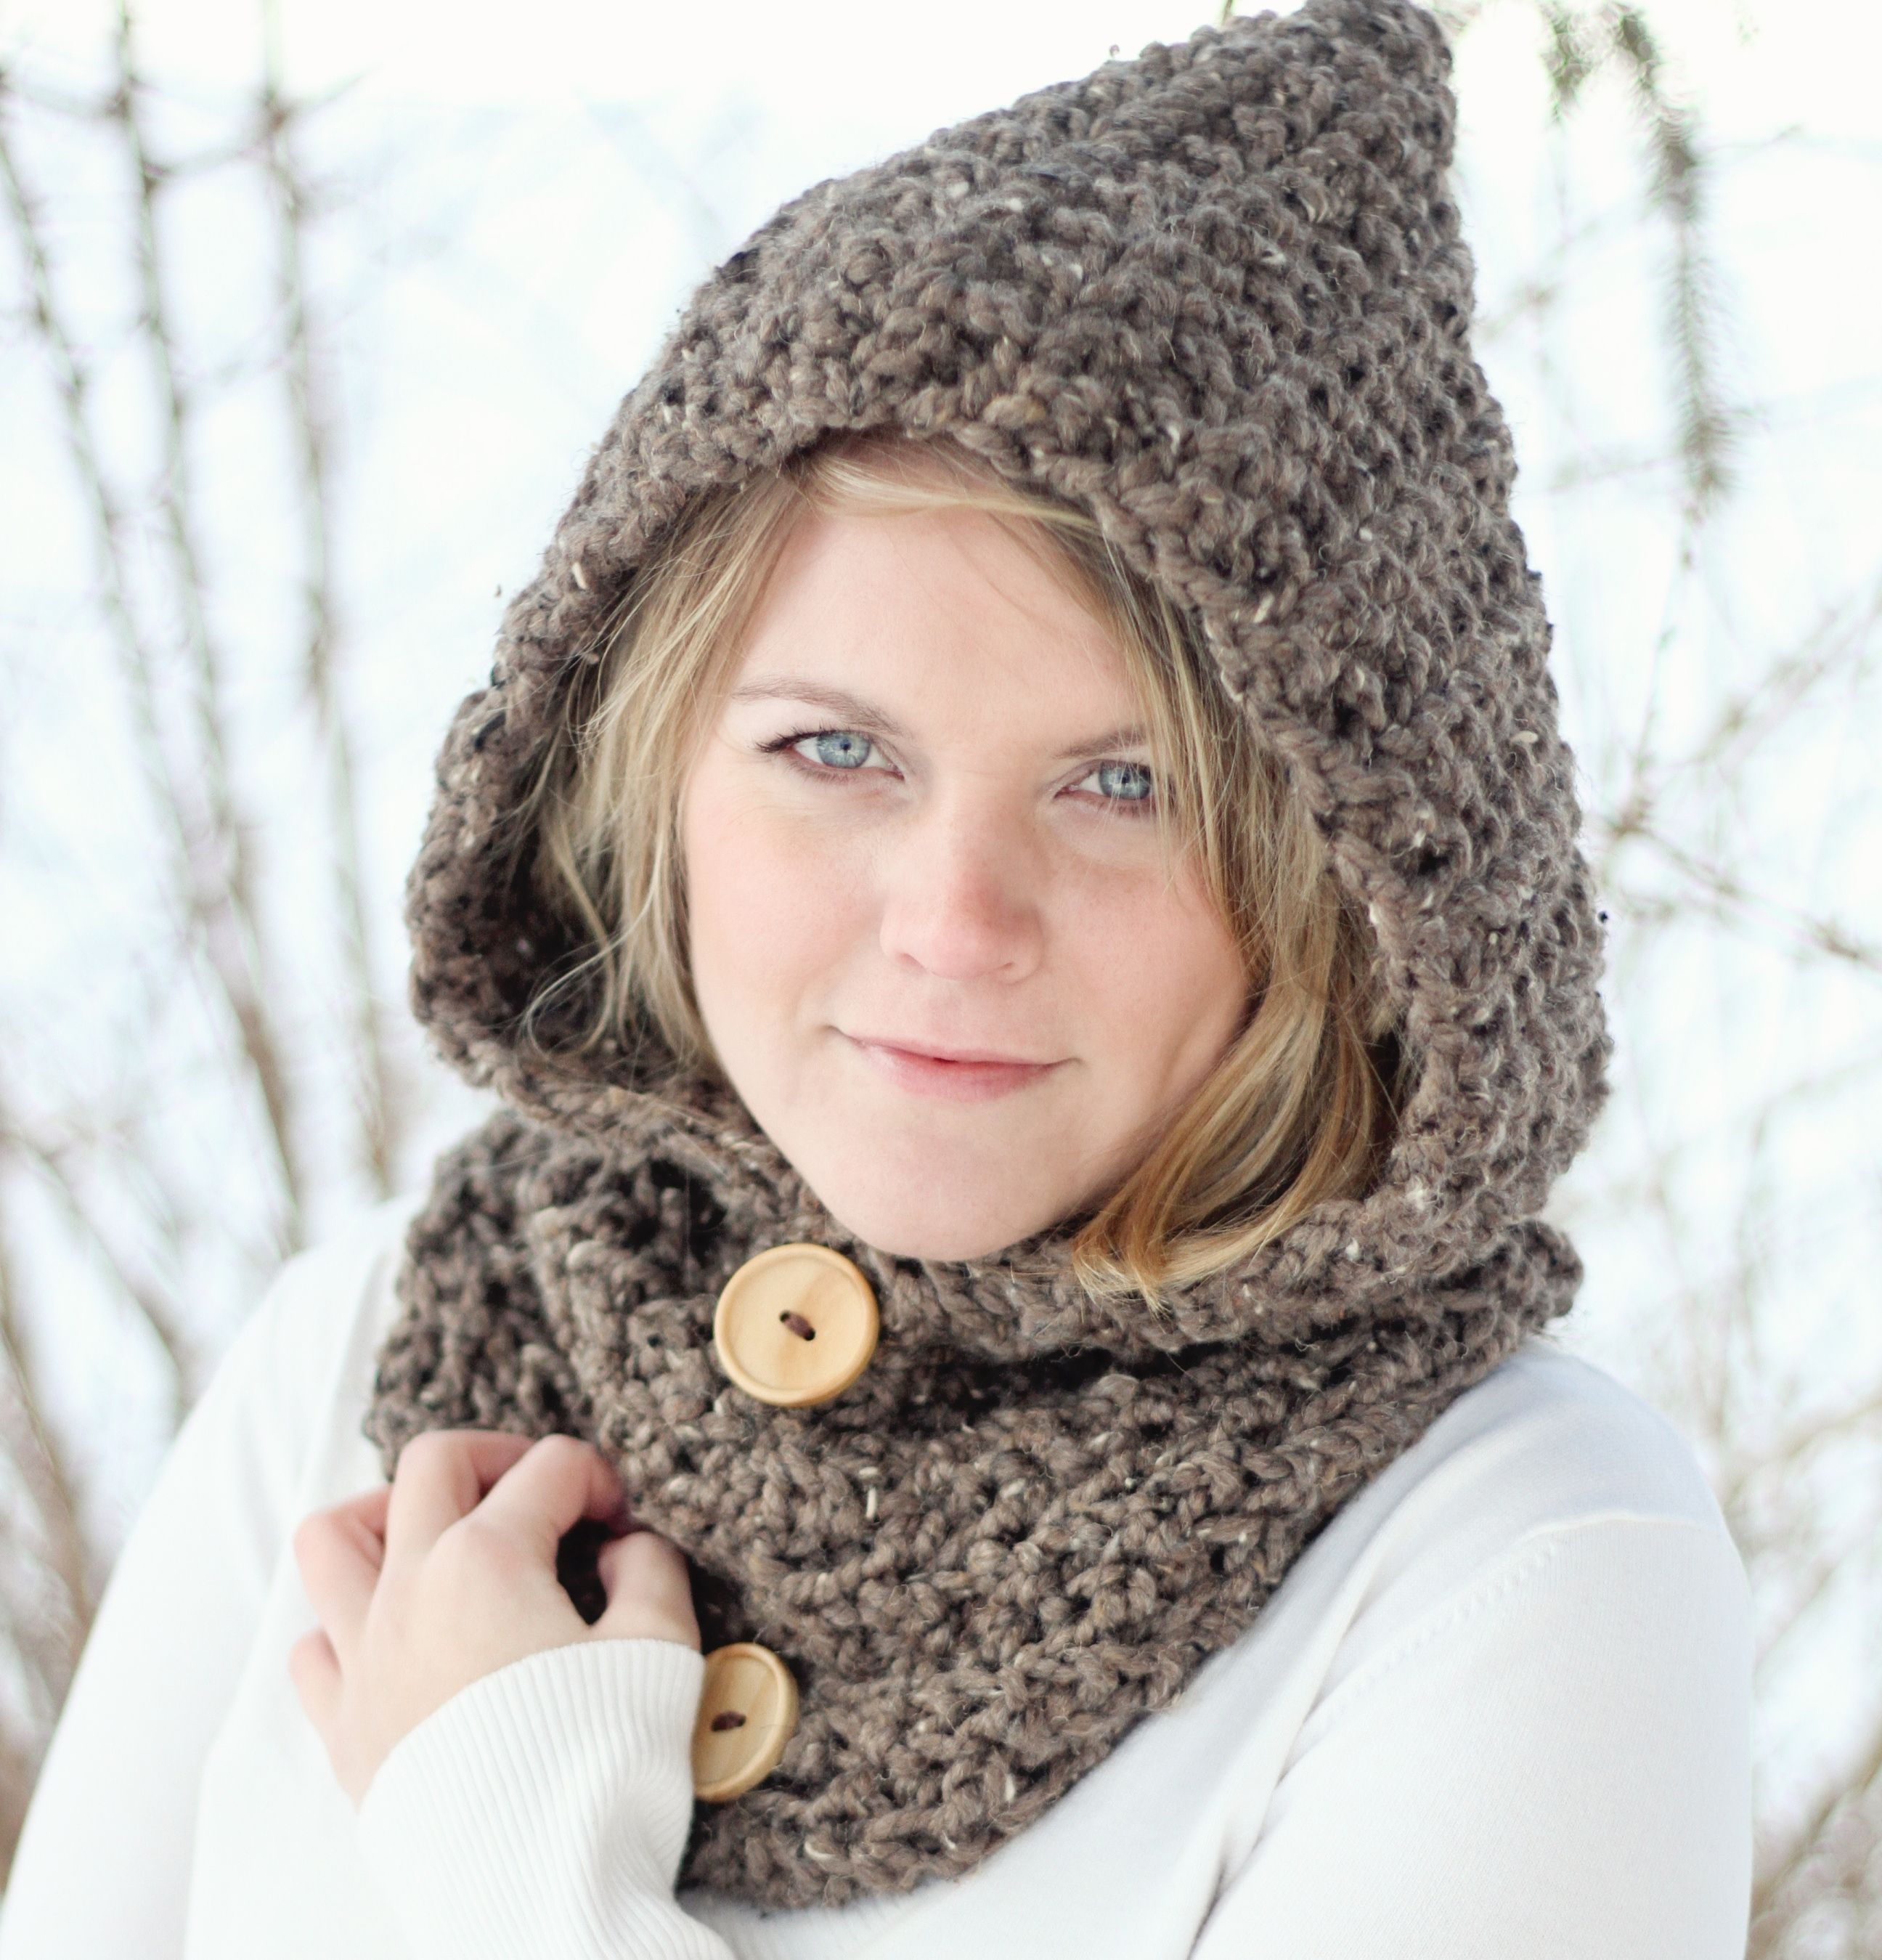 Crochet pattern hoodie cowl the toronto from jocelyn designs crochet pattern hoodie cowl the toronto from jocelyn designs toronto bears and crochet bankloansurffo Gallery